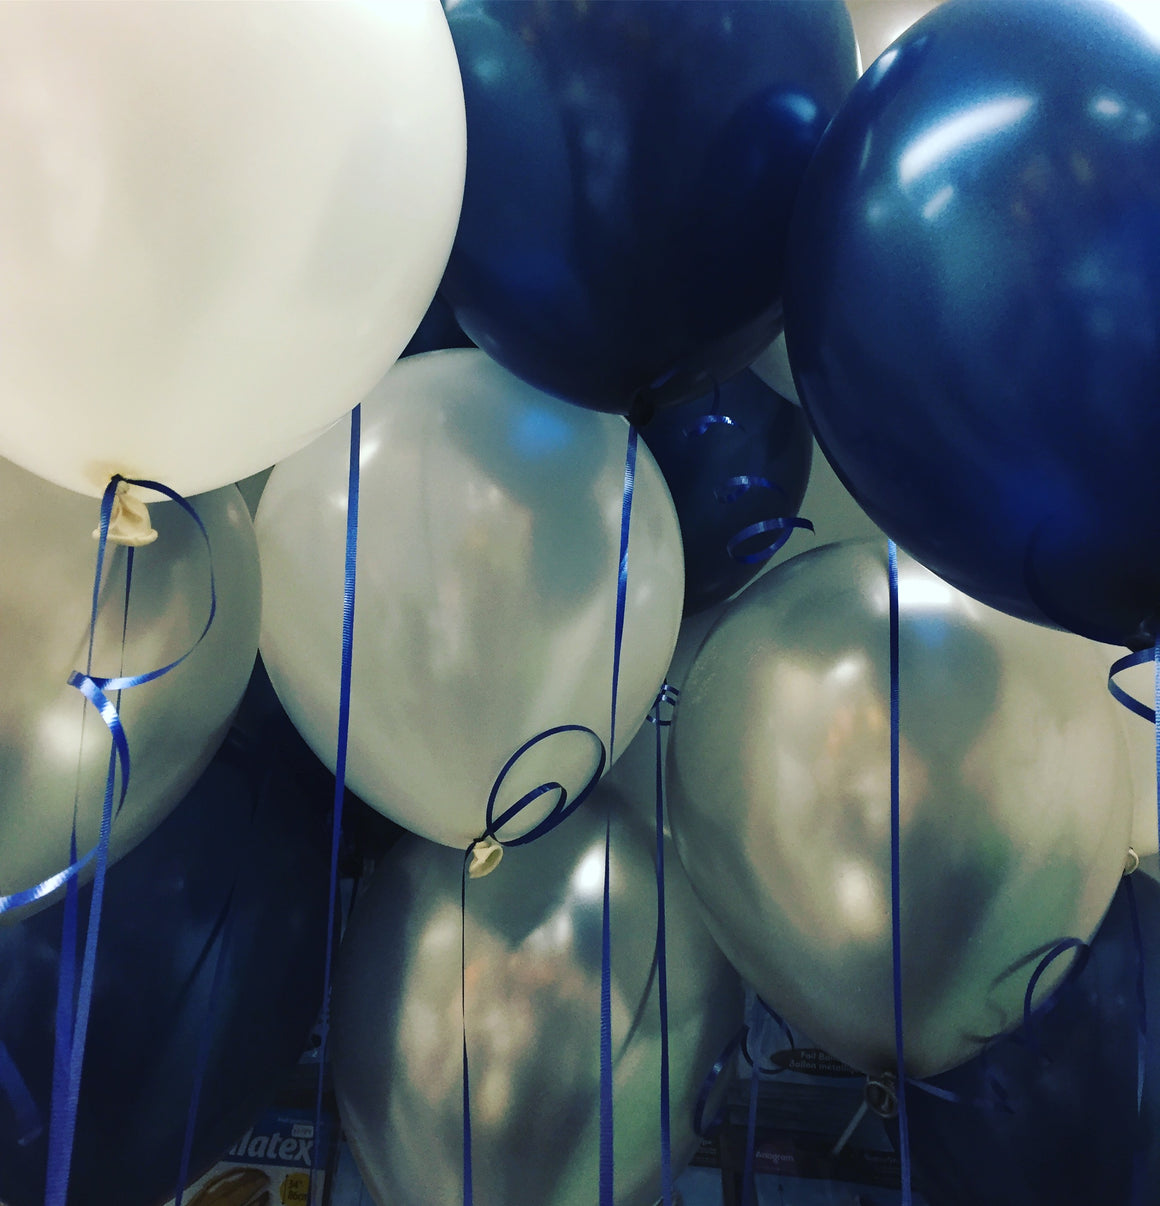 midnight blue, silver and pearalised white balloon bouquet